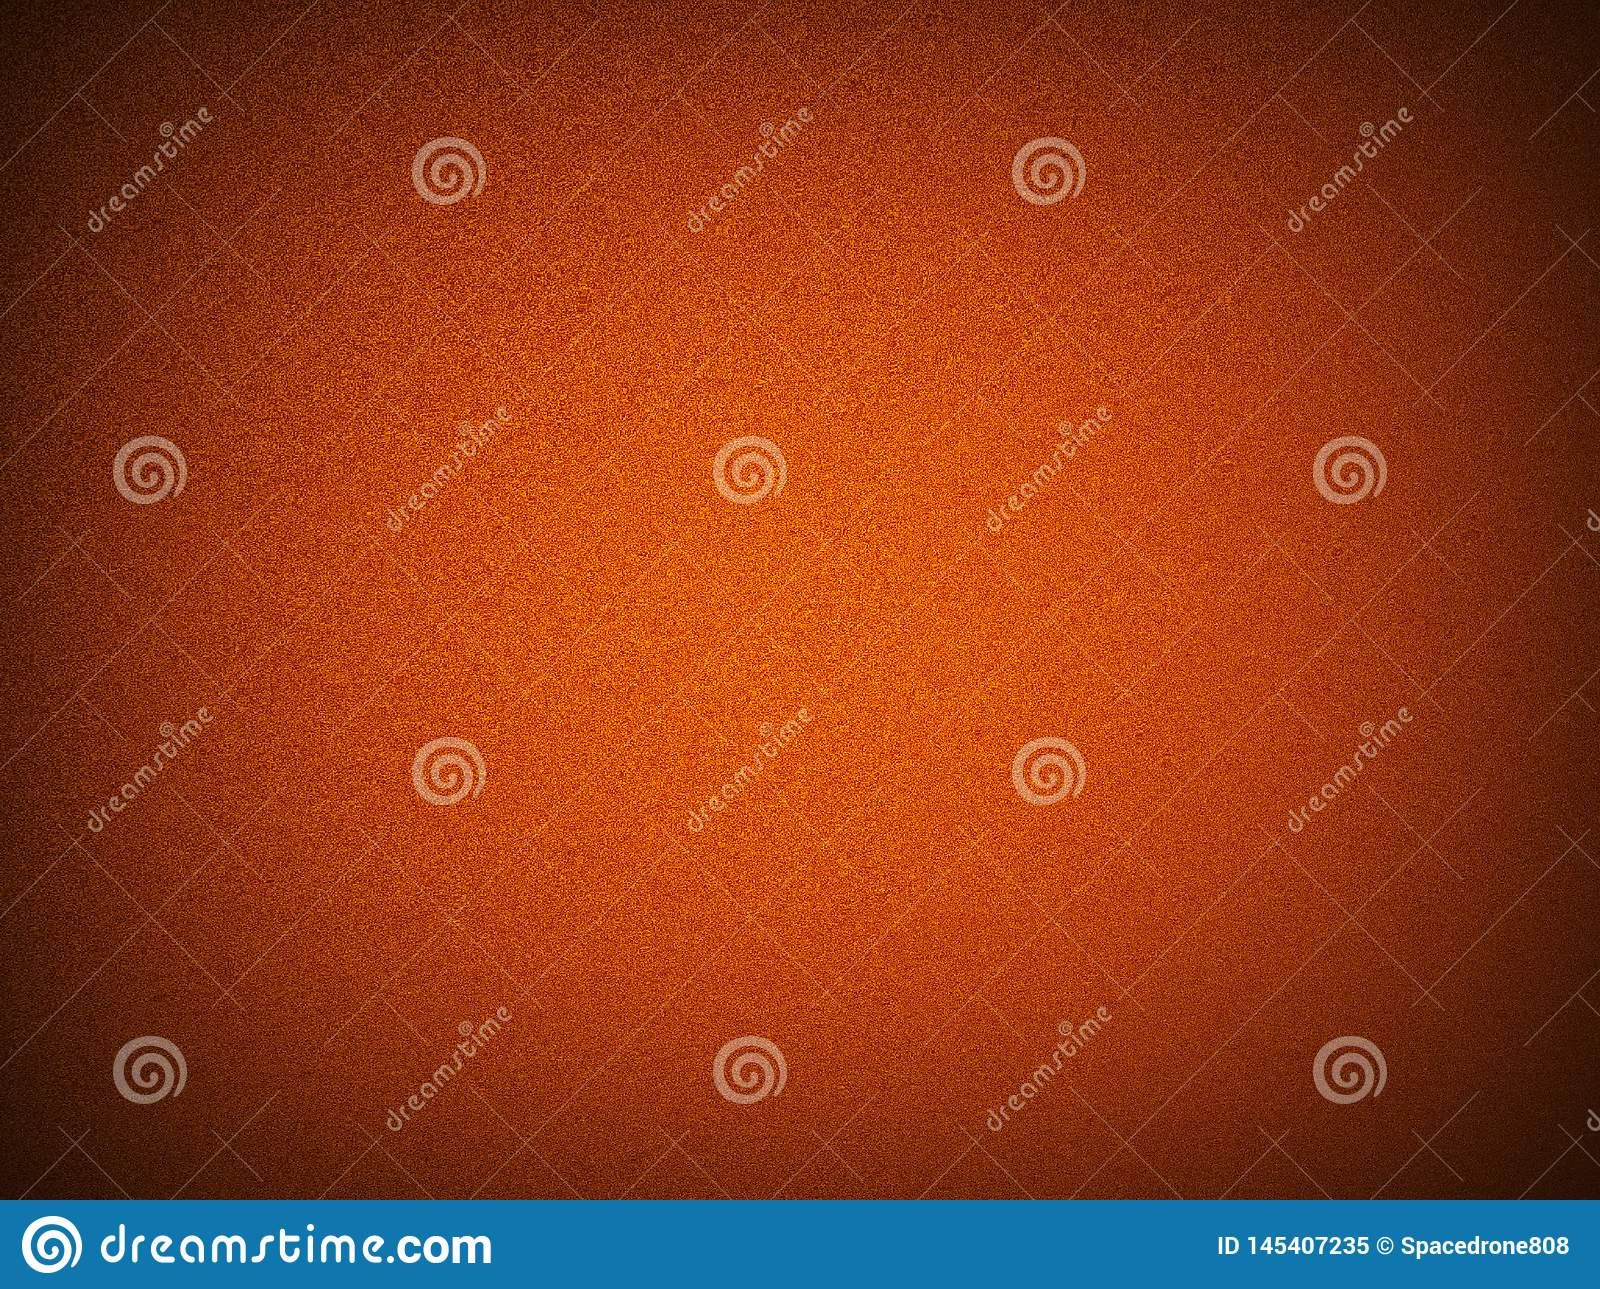 Red Vhs Static Noise Texture Background Hd Stock Image